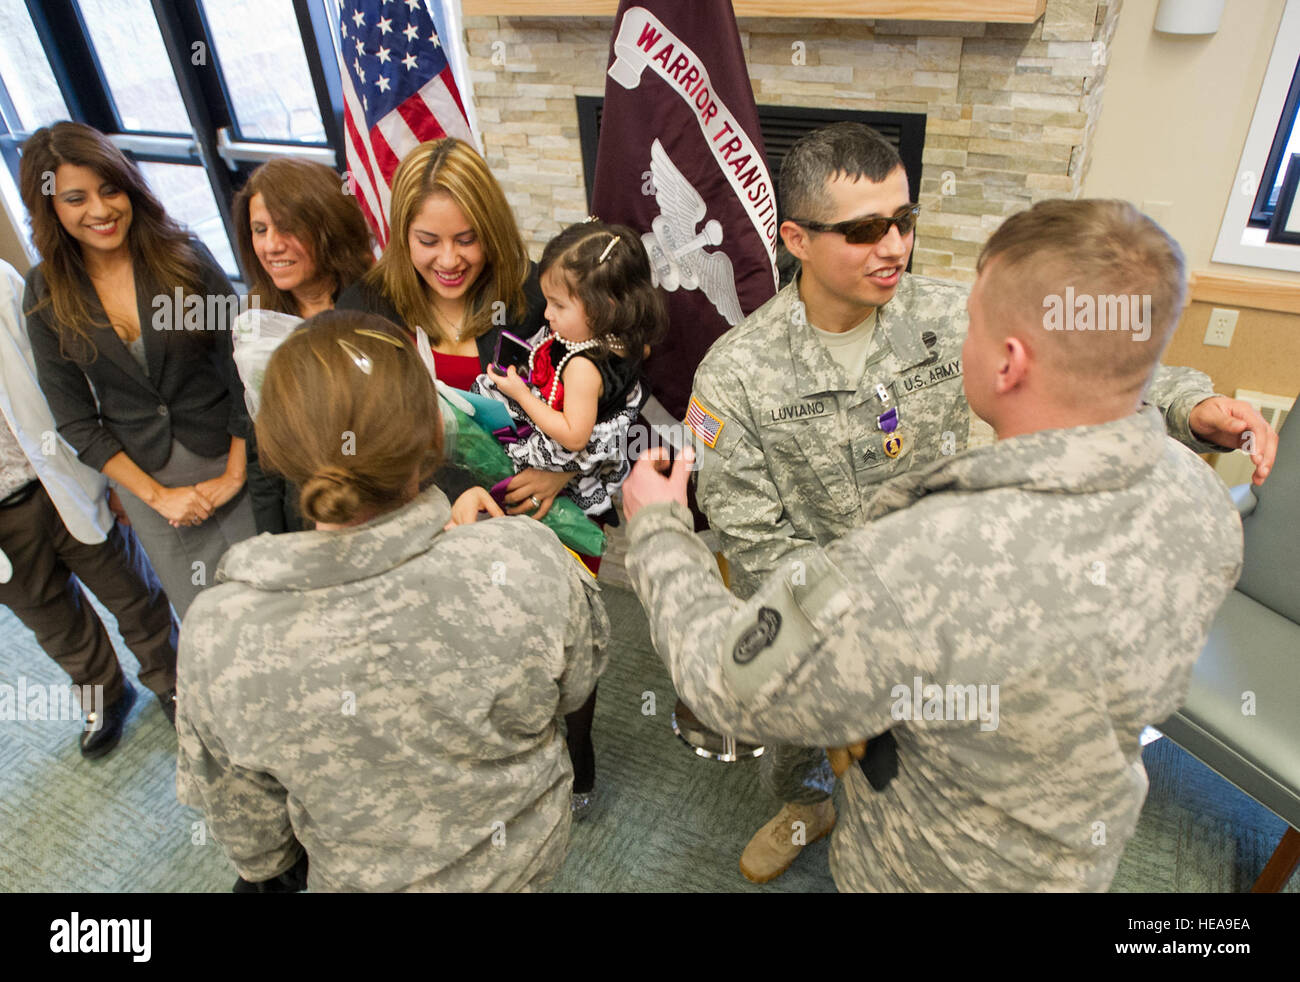 Army Sgt. Rigoberto Luviano, a native of Lexington, N.C., stands next to his family as he hugs a fellow soldier - Stock Image